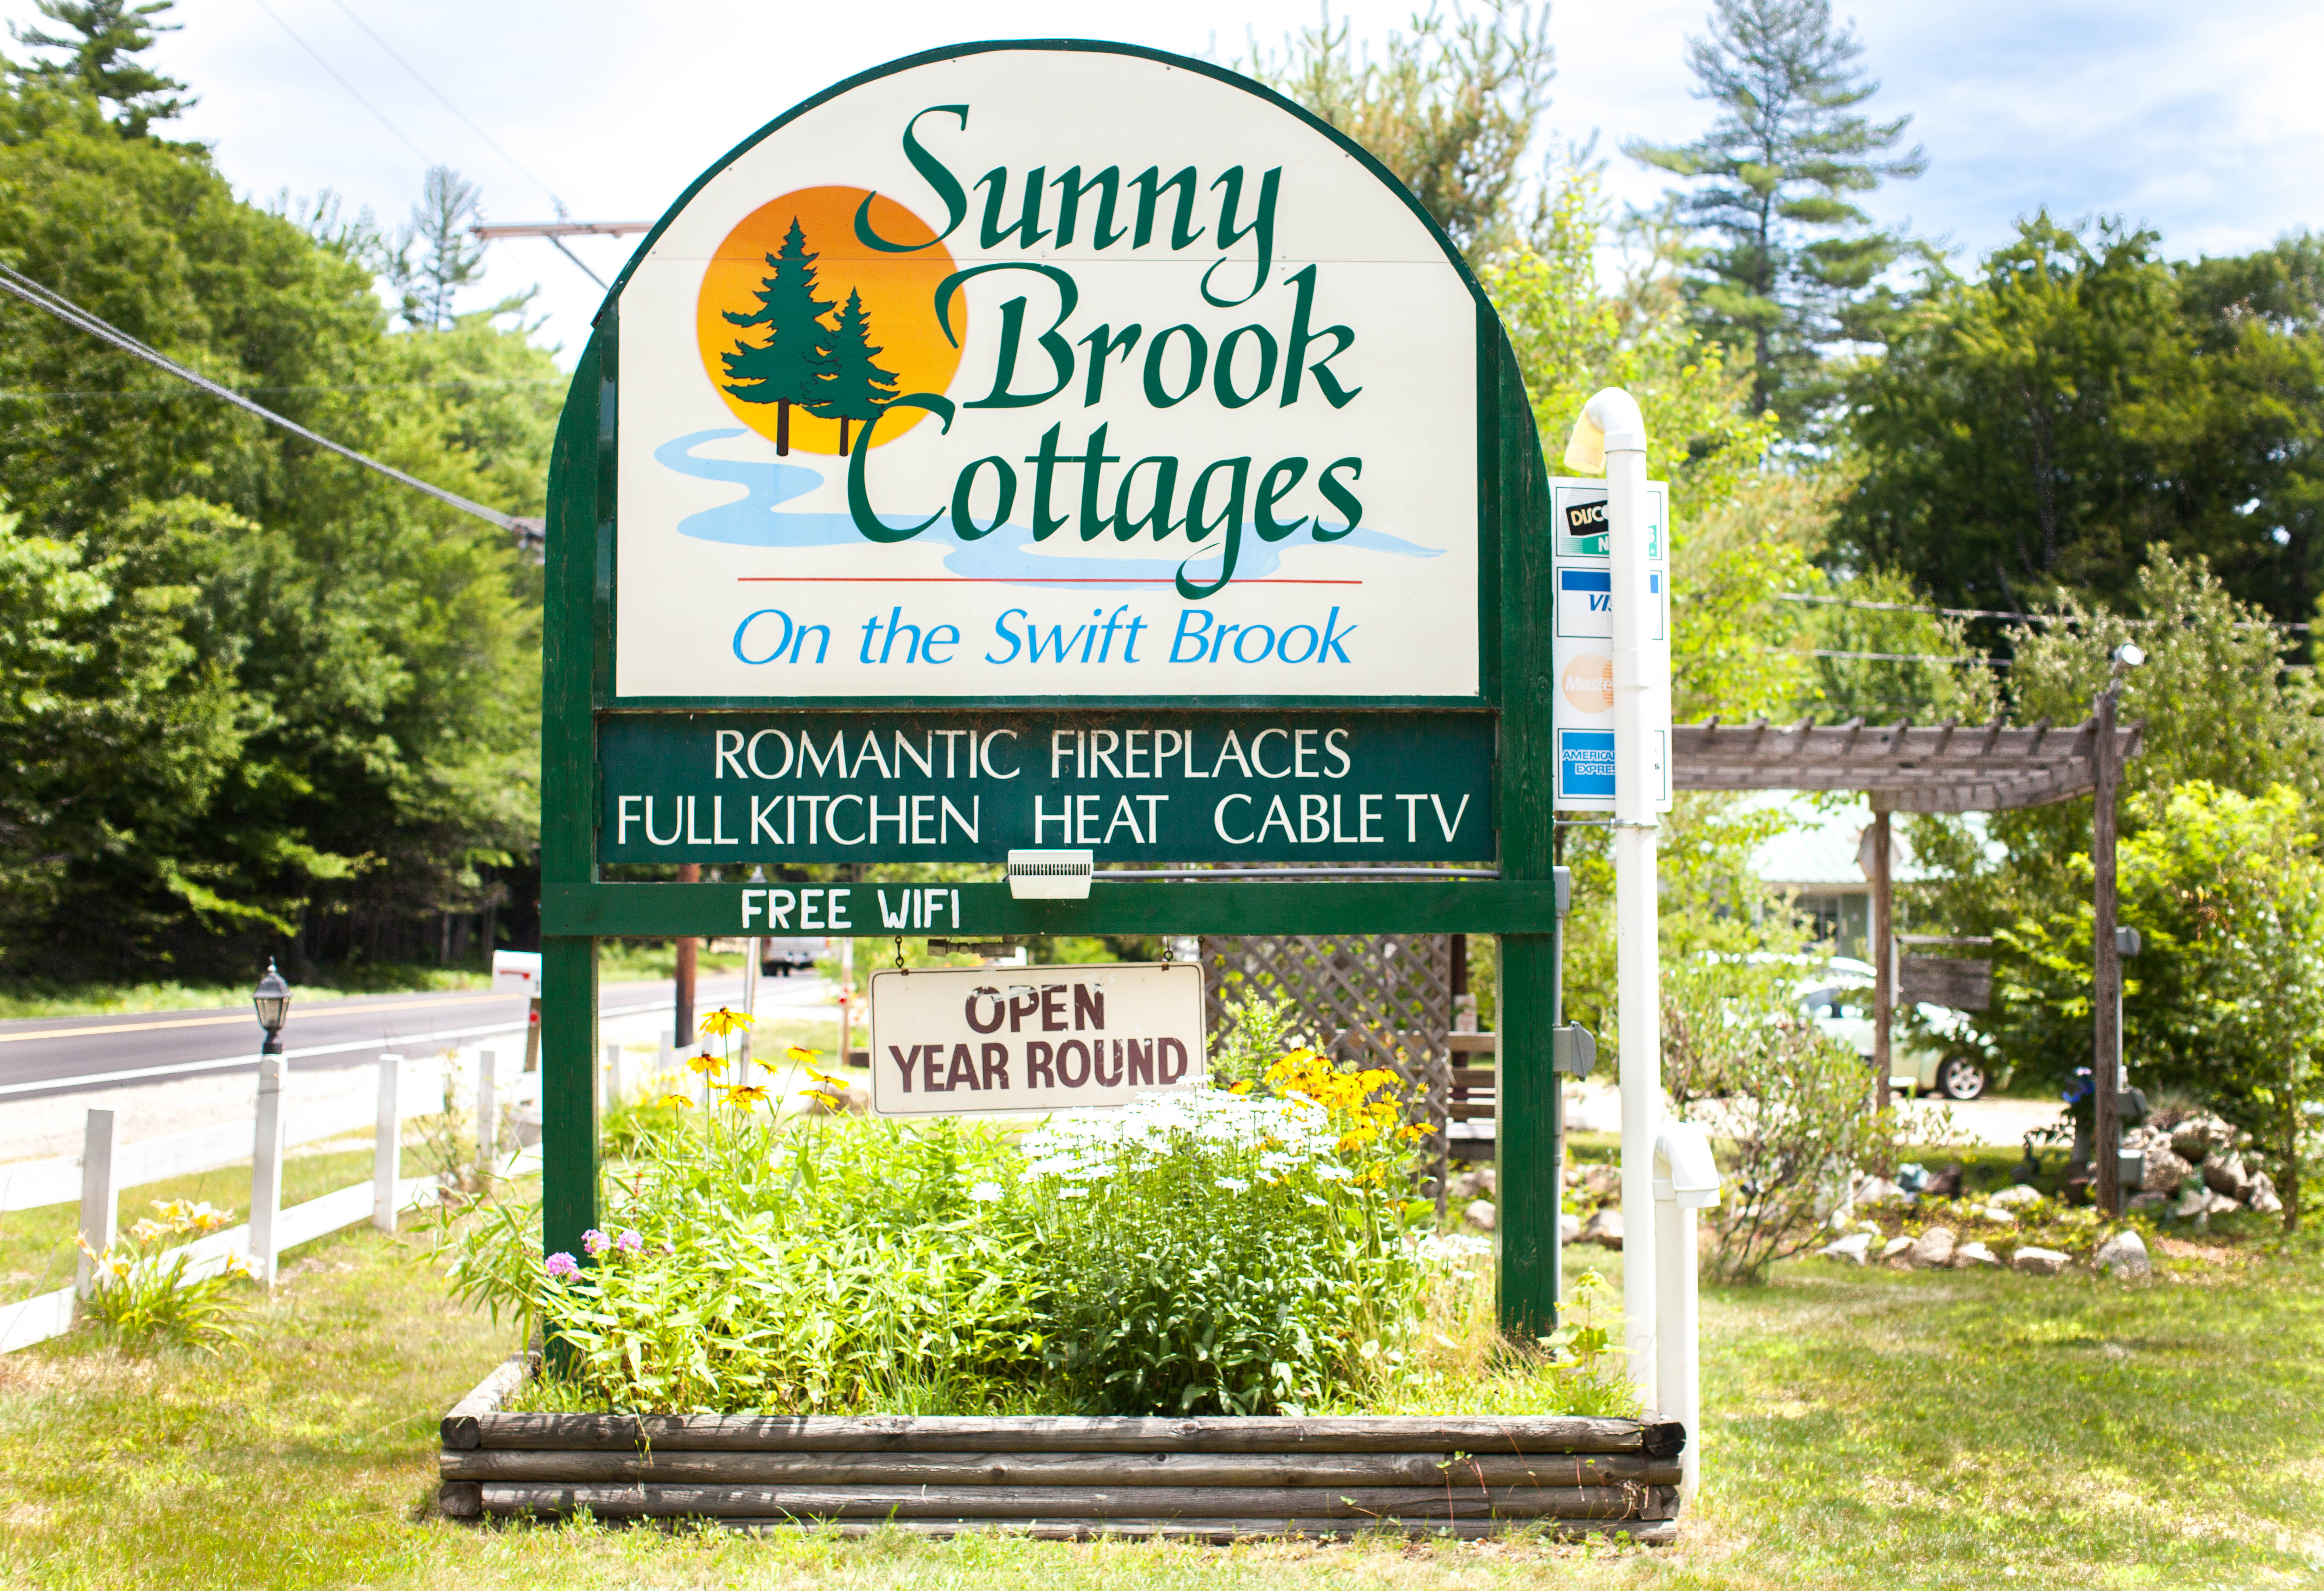 Bring Your Pets to Sunny Brook Cottages!